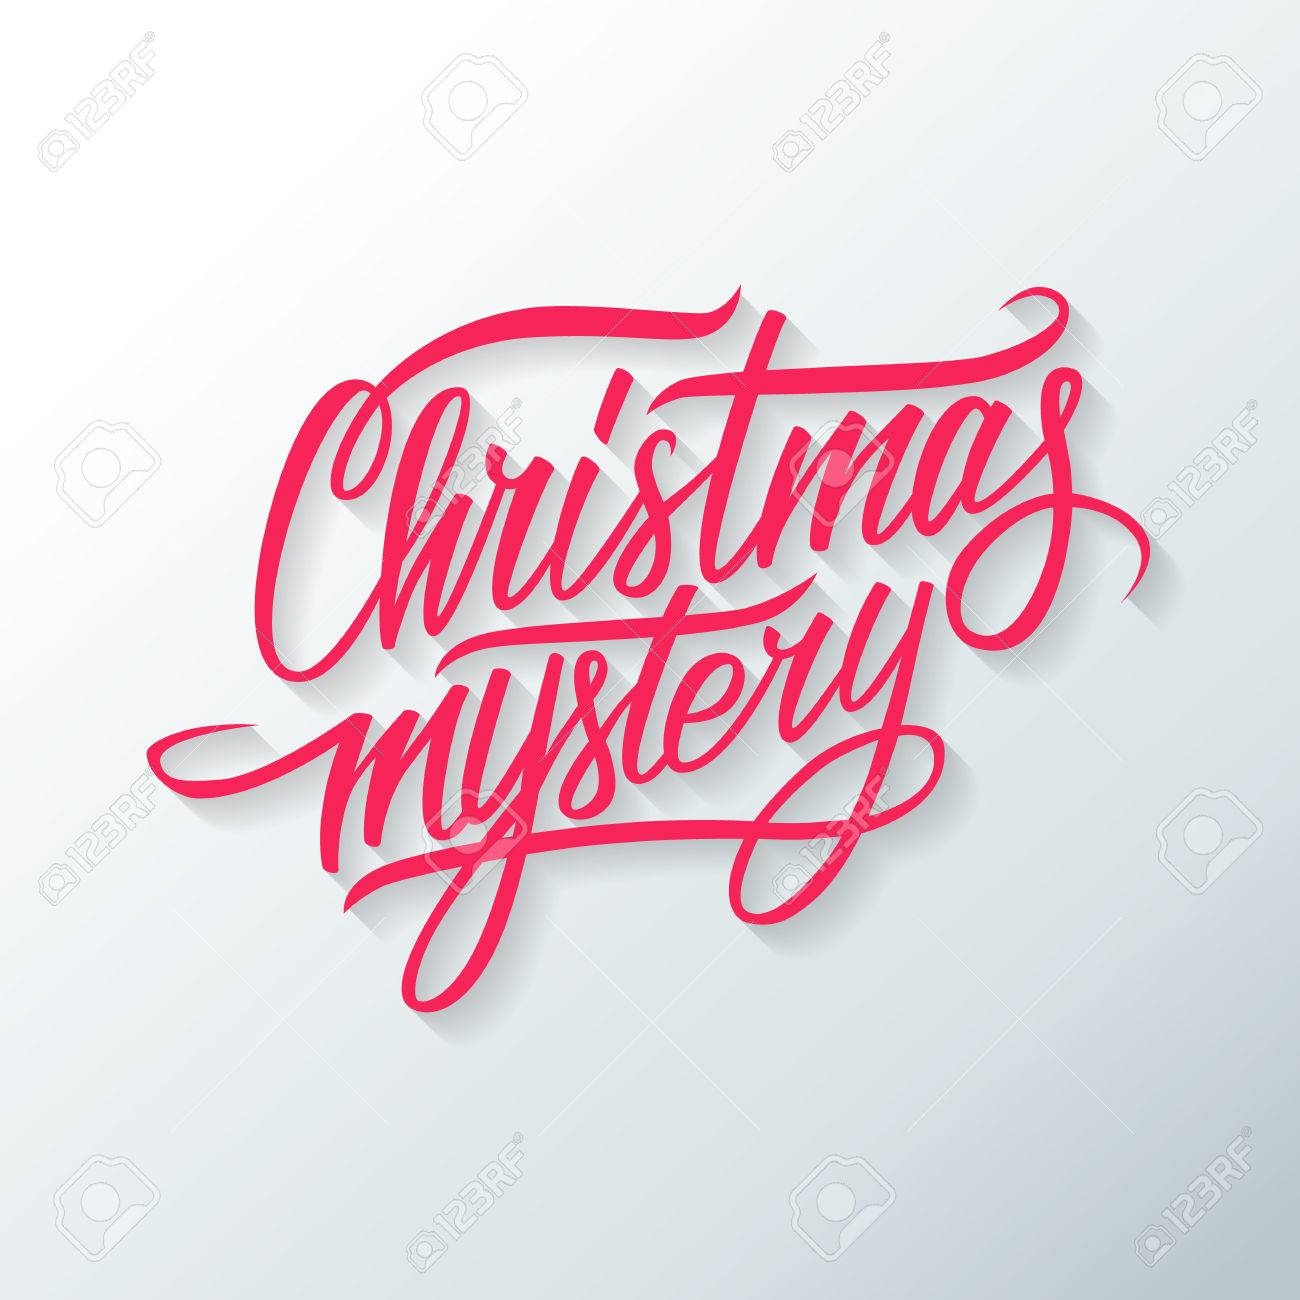 A Christmas Mystery.Christmas Mystery Hand Drawn Text Design Greeting Card Vector